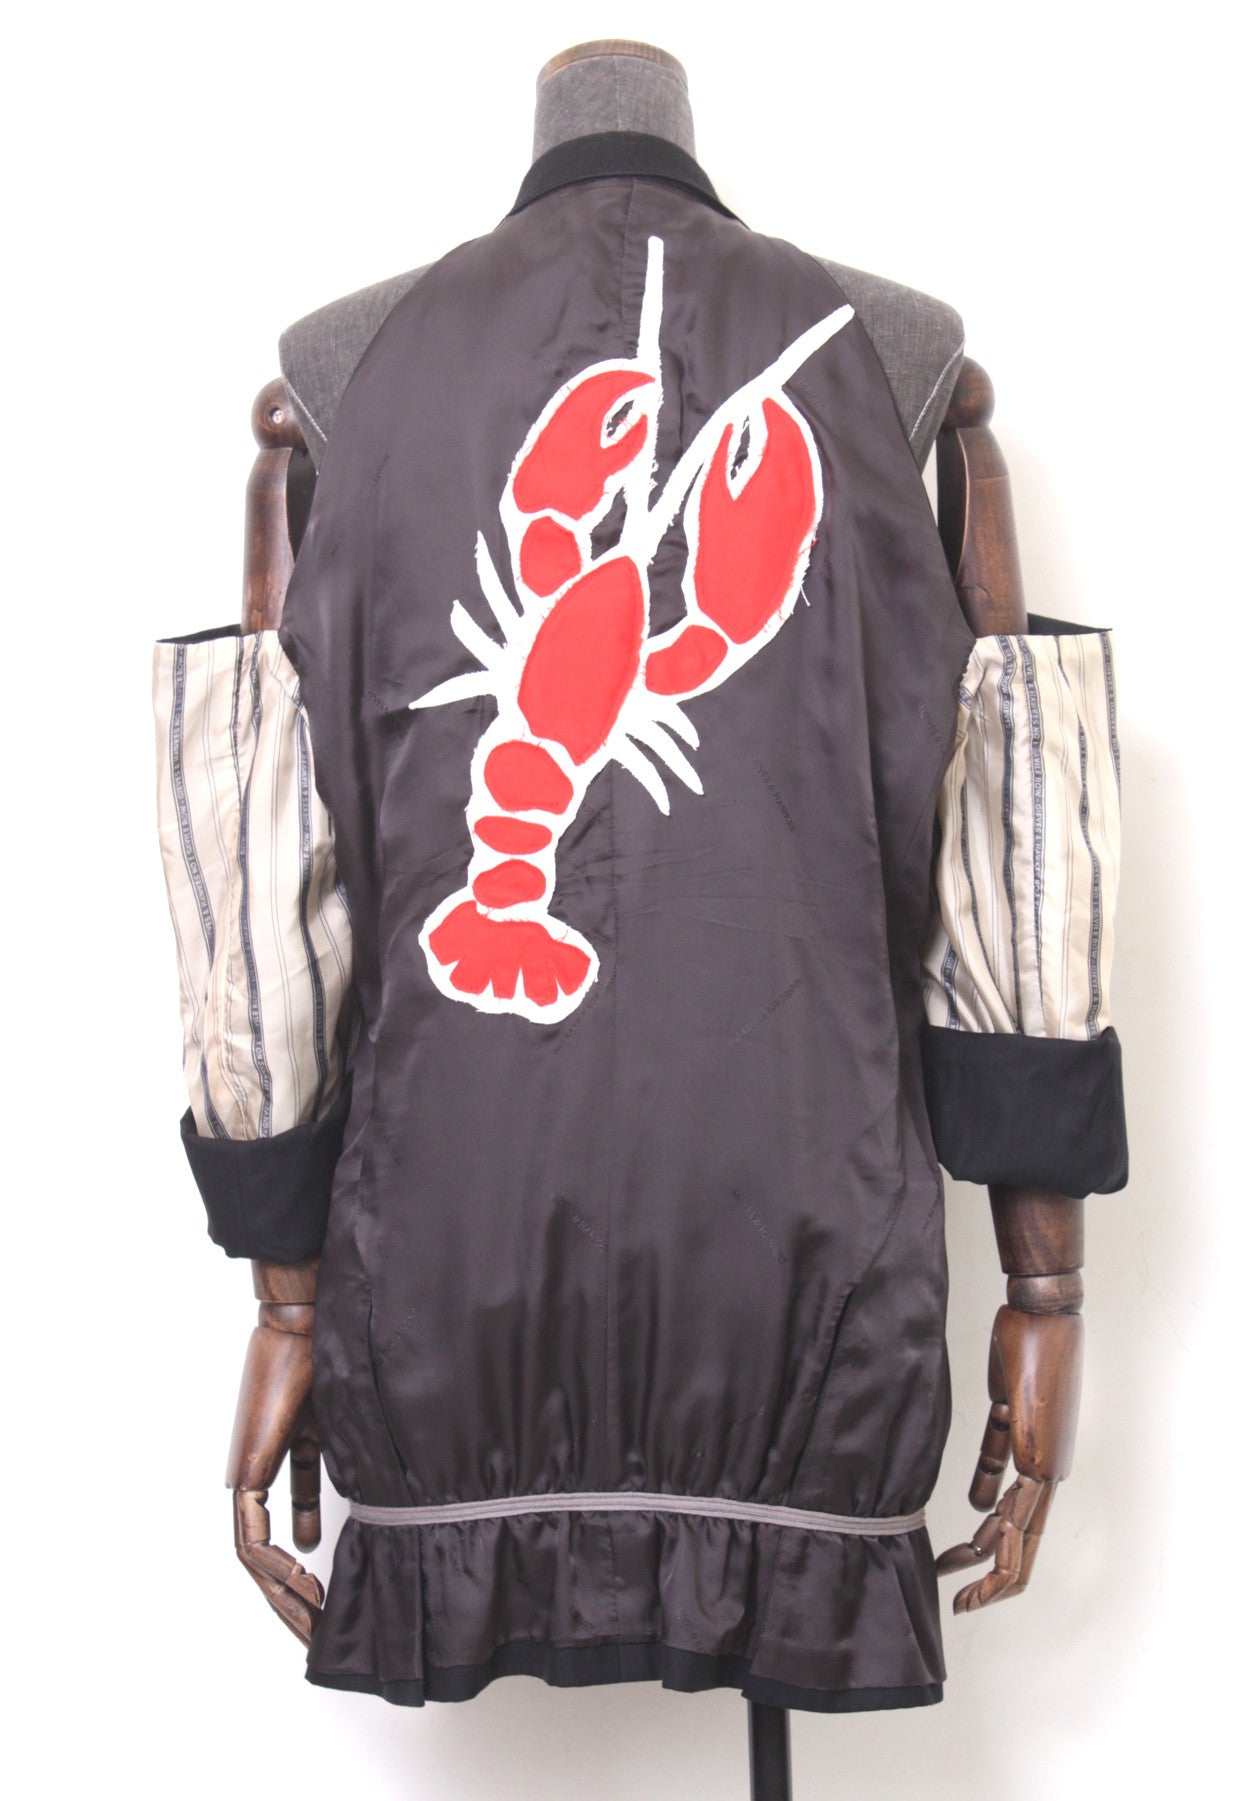 Lobster Jacket